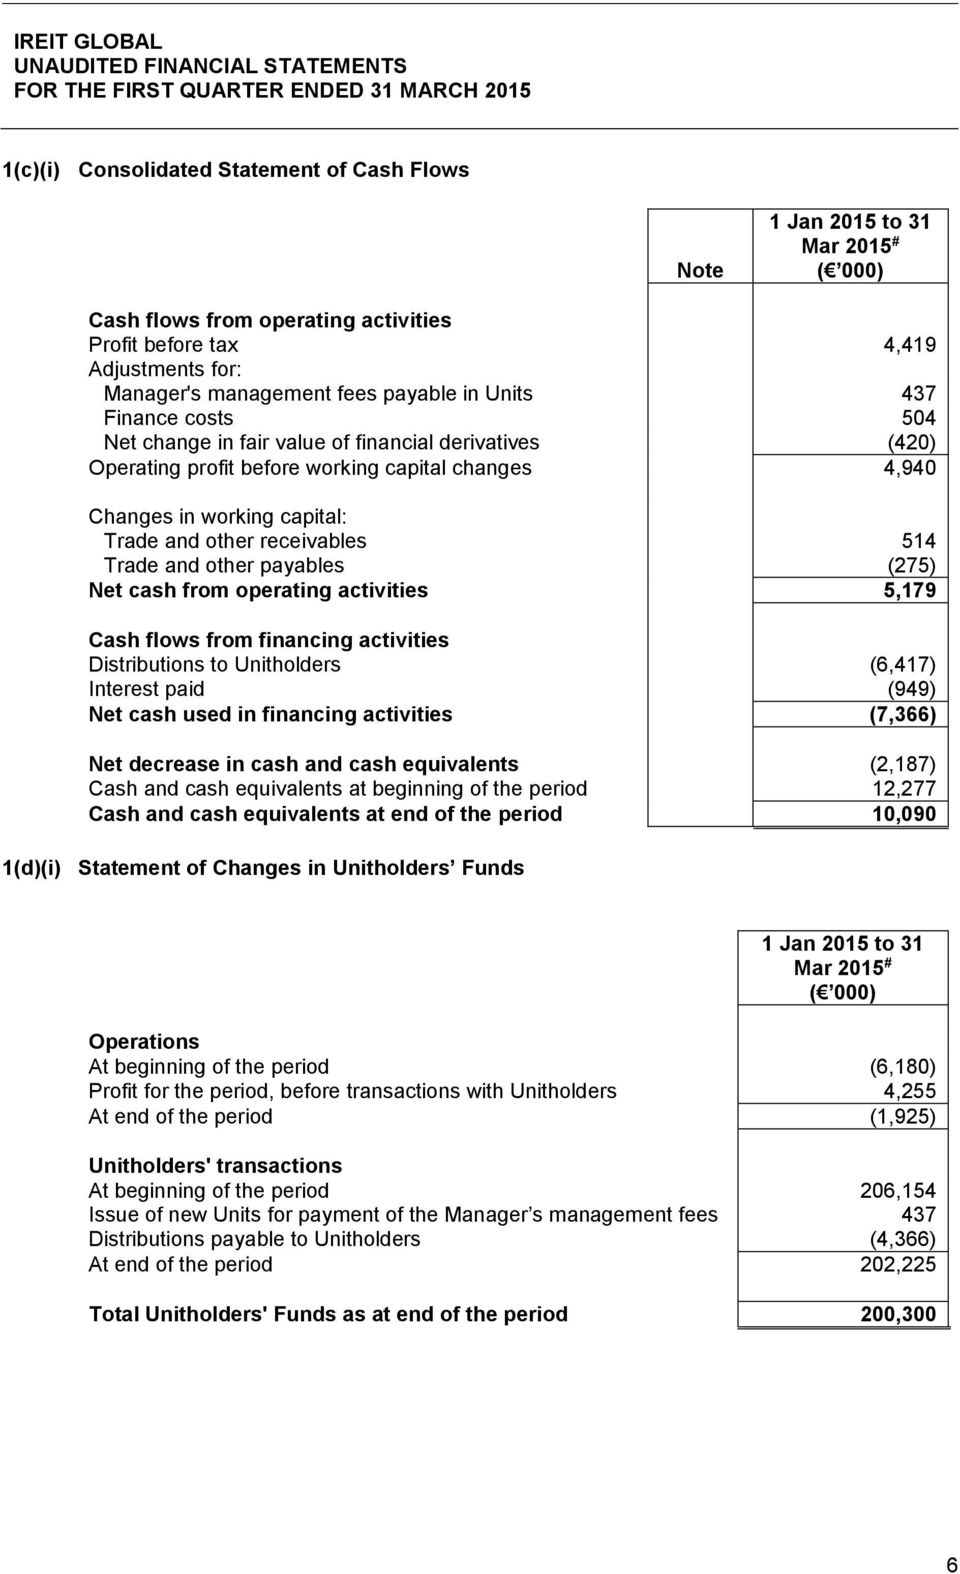 Trade and other payables (275) Net cash from operating activities 5,179 Cash flows from financing activities Distributions to Unitholders (6,417) Interest paid (949) Net cash used in financing